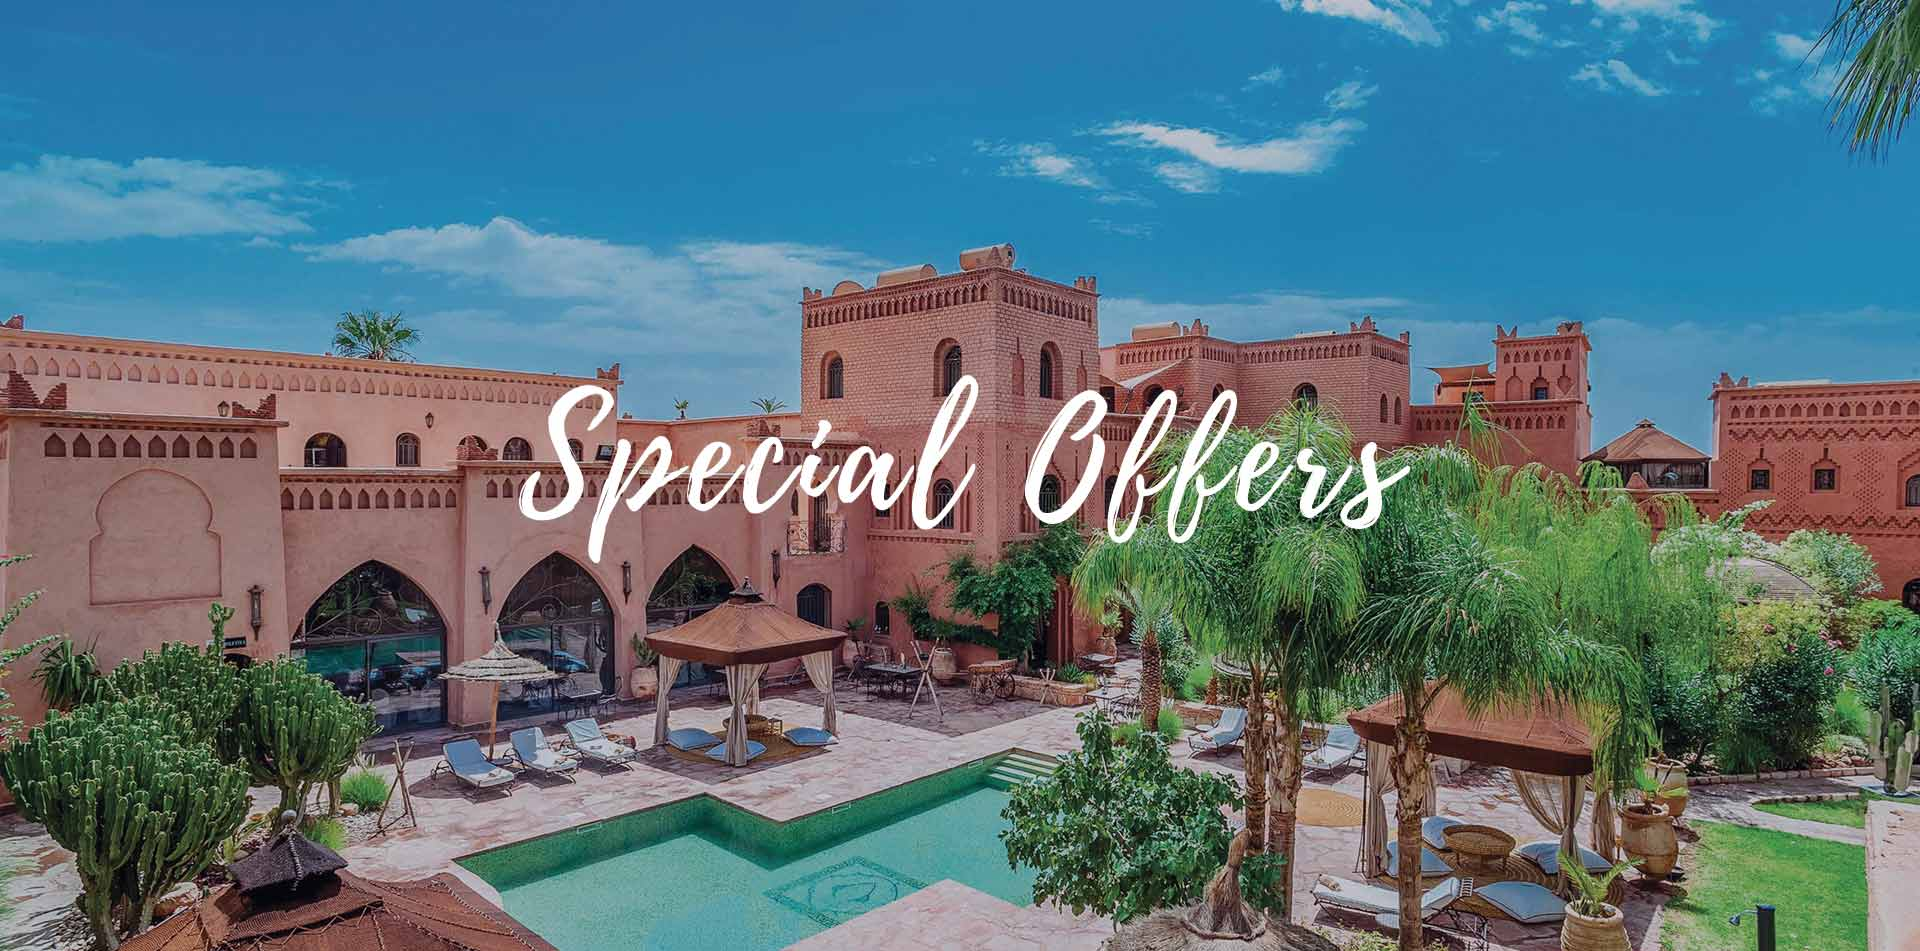 Africa Morocco Riad Ksar Ighnda hotel courtyard with outdoor pool Special Offers - luxury vacation destinations